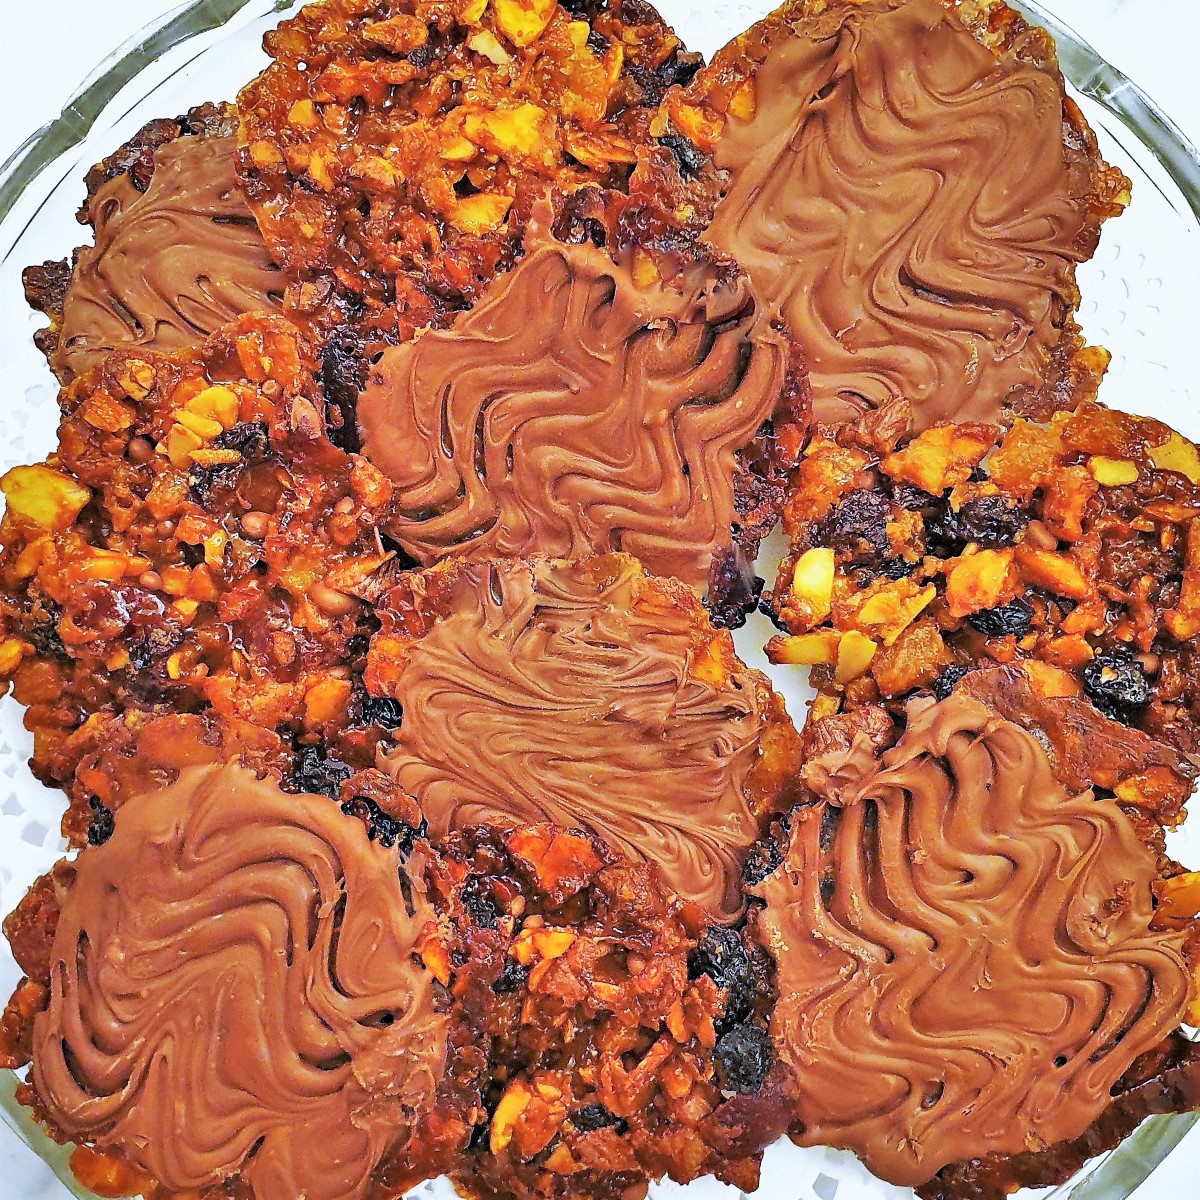 Chocolate coated florentines on a glass plate.